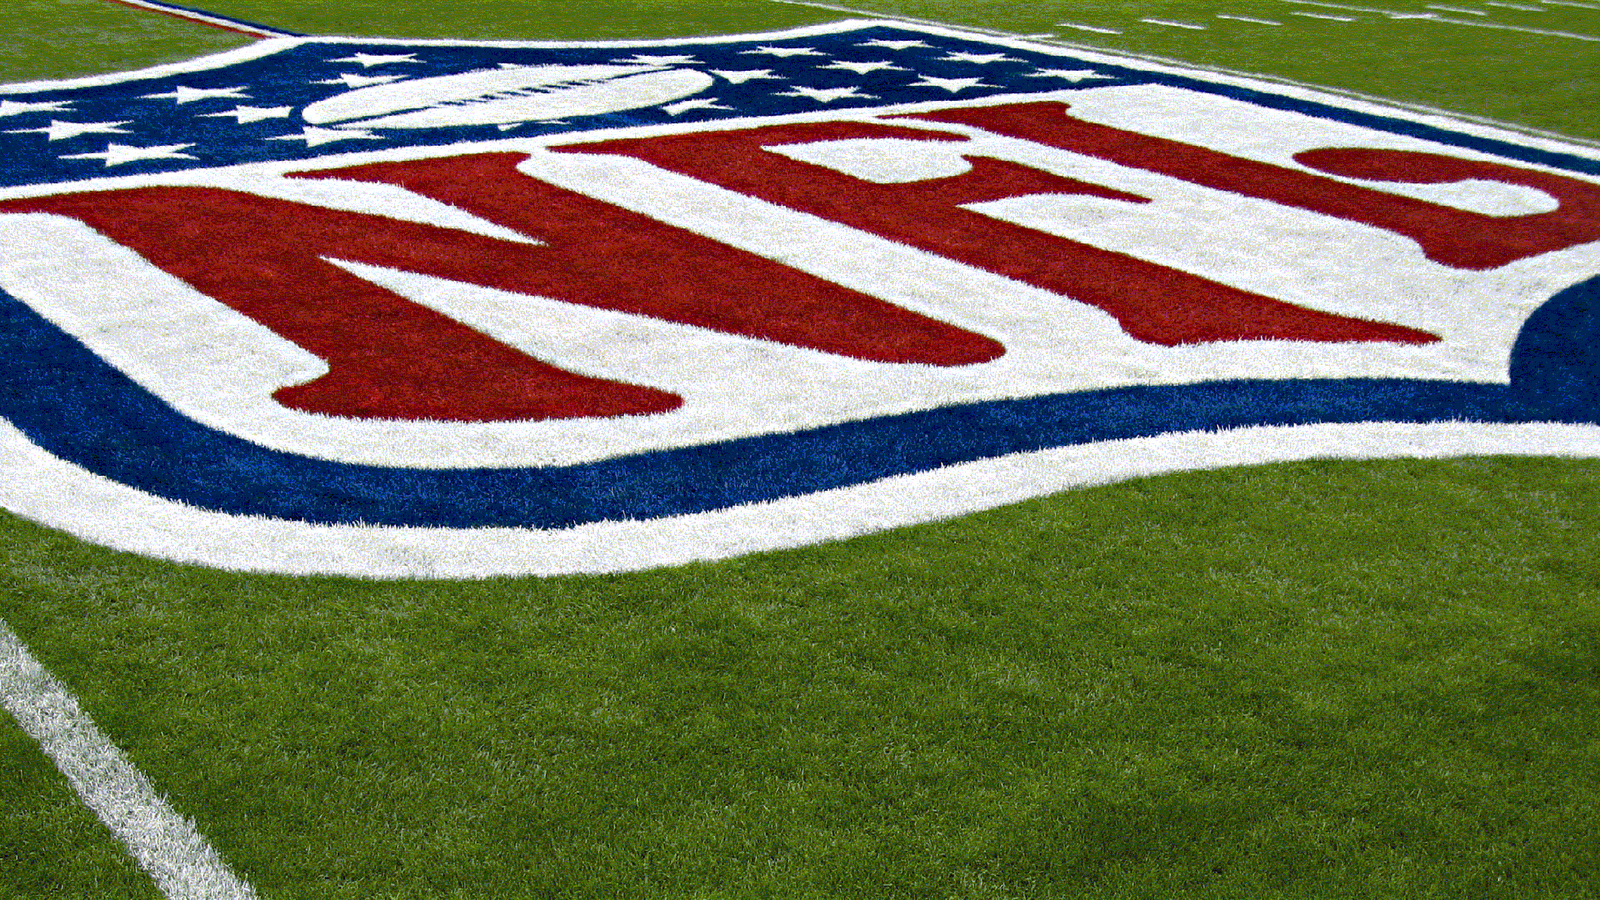 Nfl Football Wallpaper hd Nfl hd Wallpapers 03 1600x900